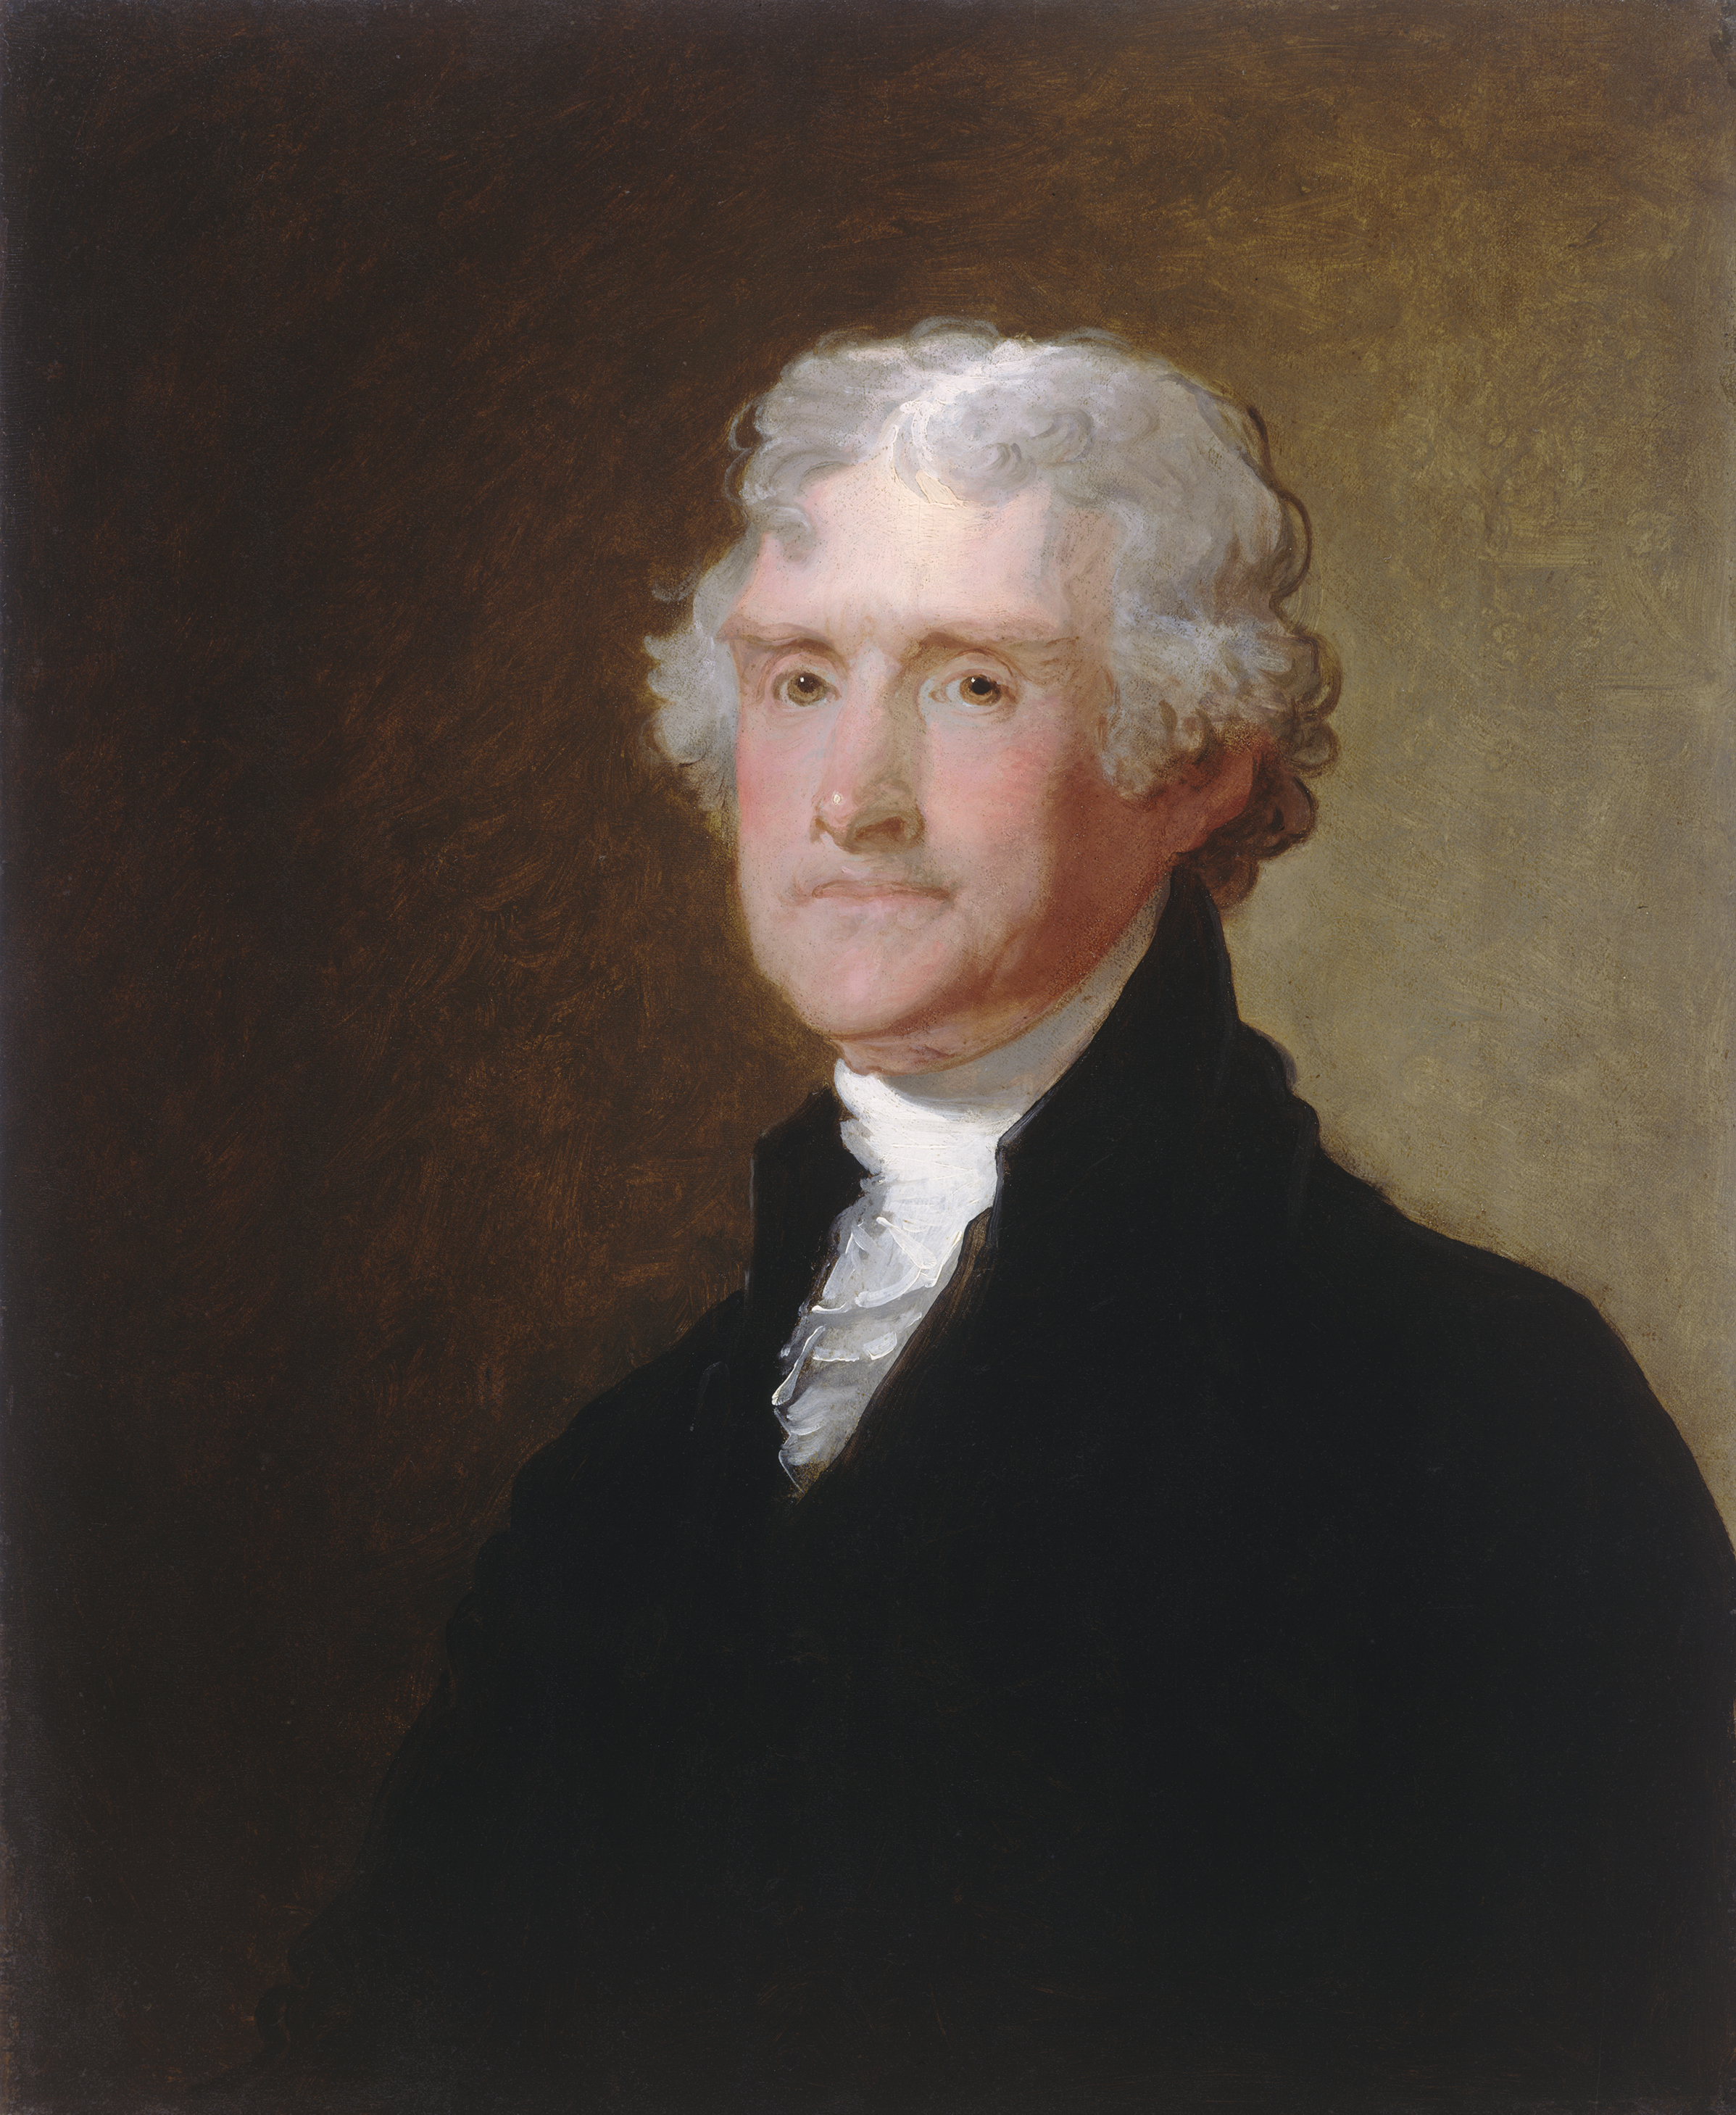 thomas jefferson Jefferson (philadelphia university + thomas jefferson university) is committed to research, discovery and creativity across disciplines we believe that we all learn something when our dreams intersect, and when we work together, we redefine what's humanly possible.